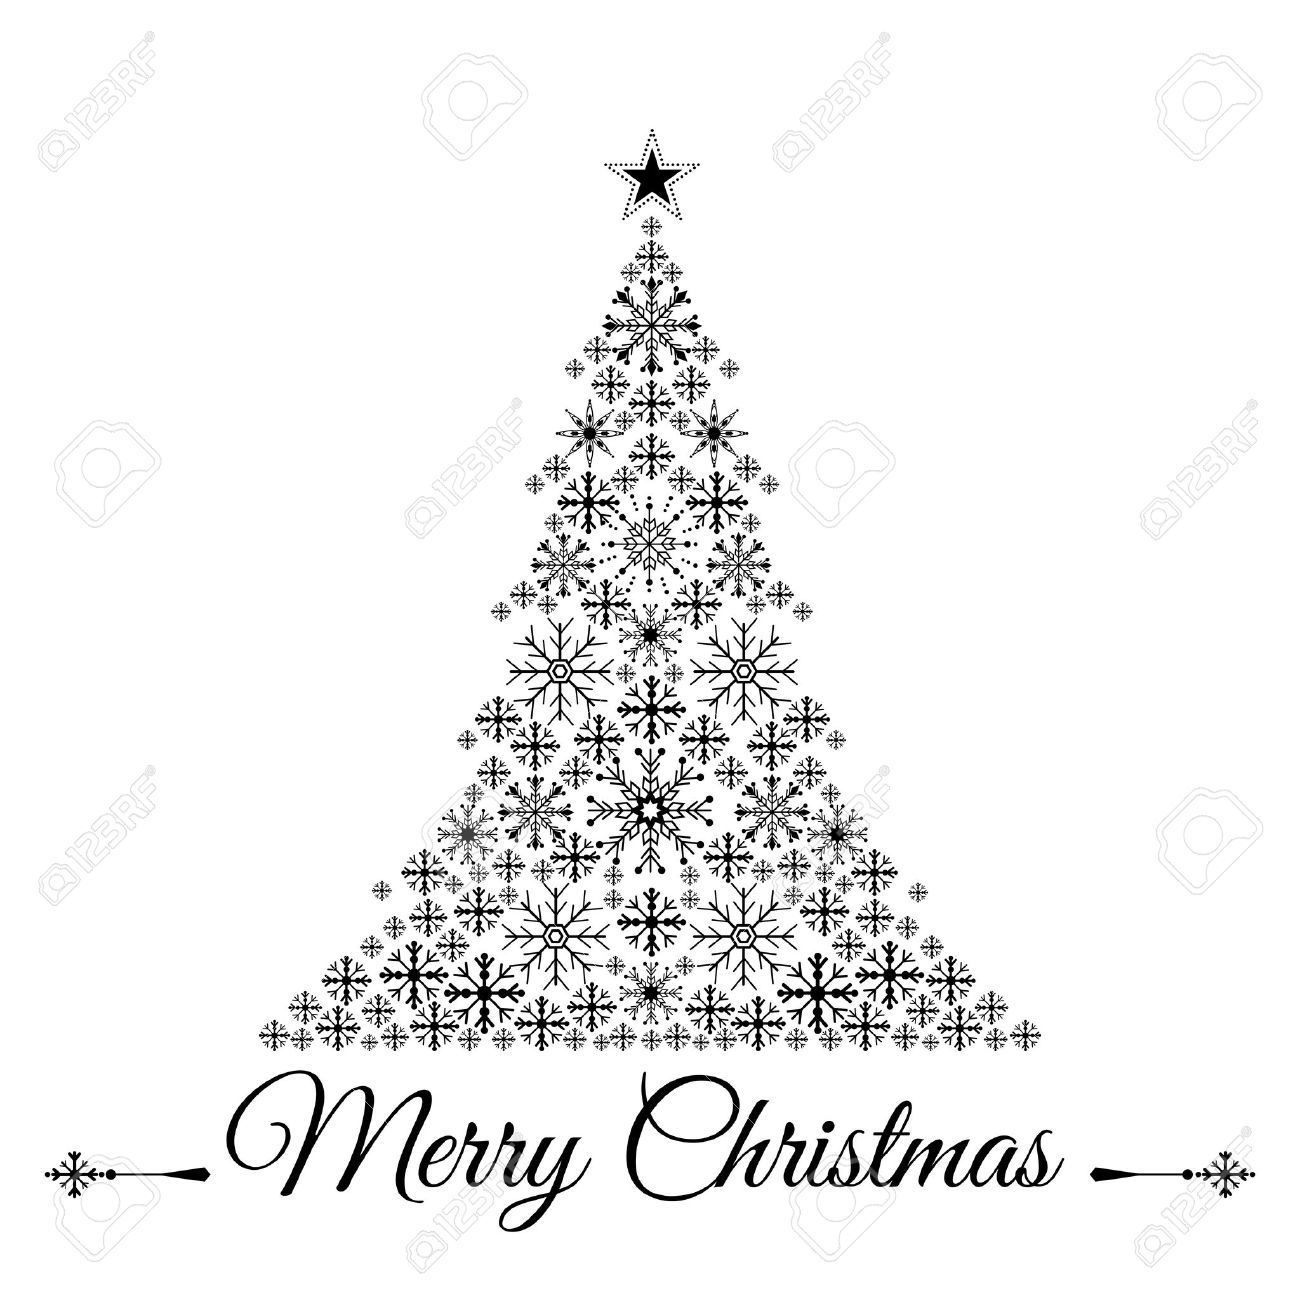 Stylized Christmas Tree Vector Illustration Royalty Free Cliparts